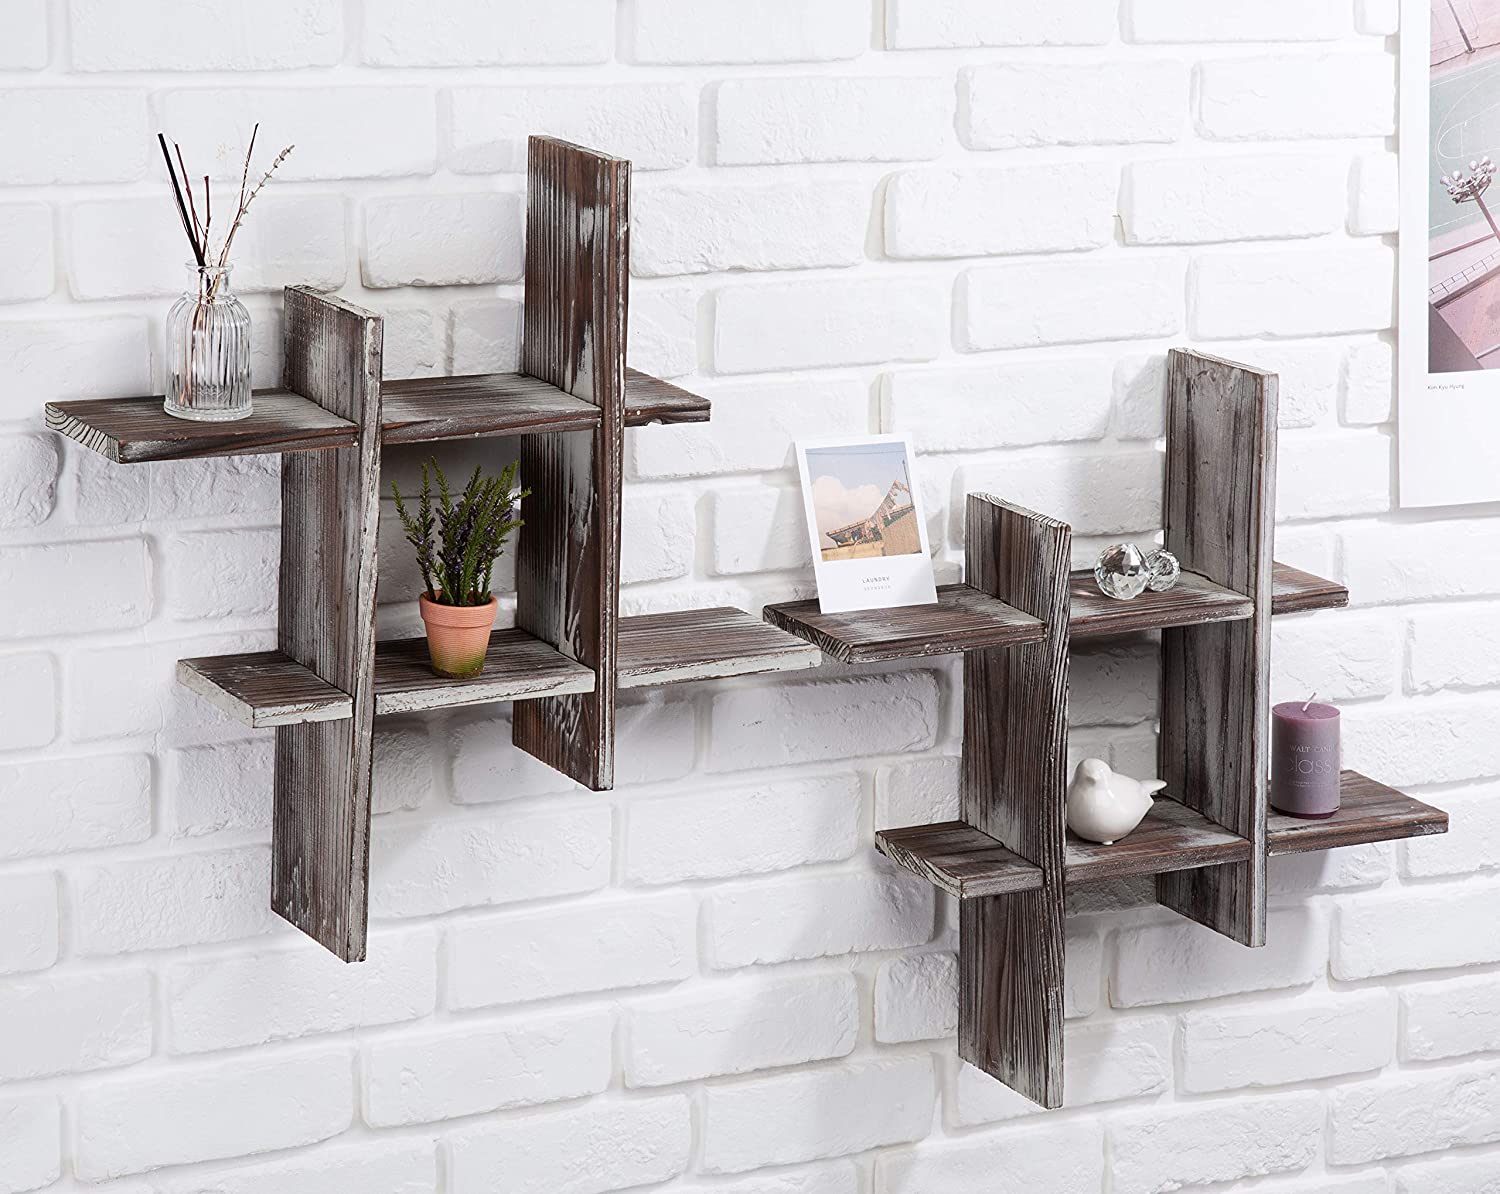 J JACKCUBE DESIGN Rustic Wall Mount Shelves Set of 2 Cube Grid Display Case Floating Organizer Rack Farmhouse Style Home Decor for Bathroom, Kitchen, Bedroom - MK511A